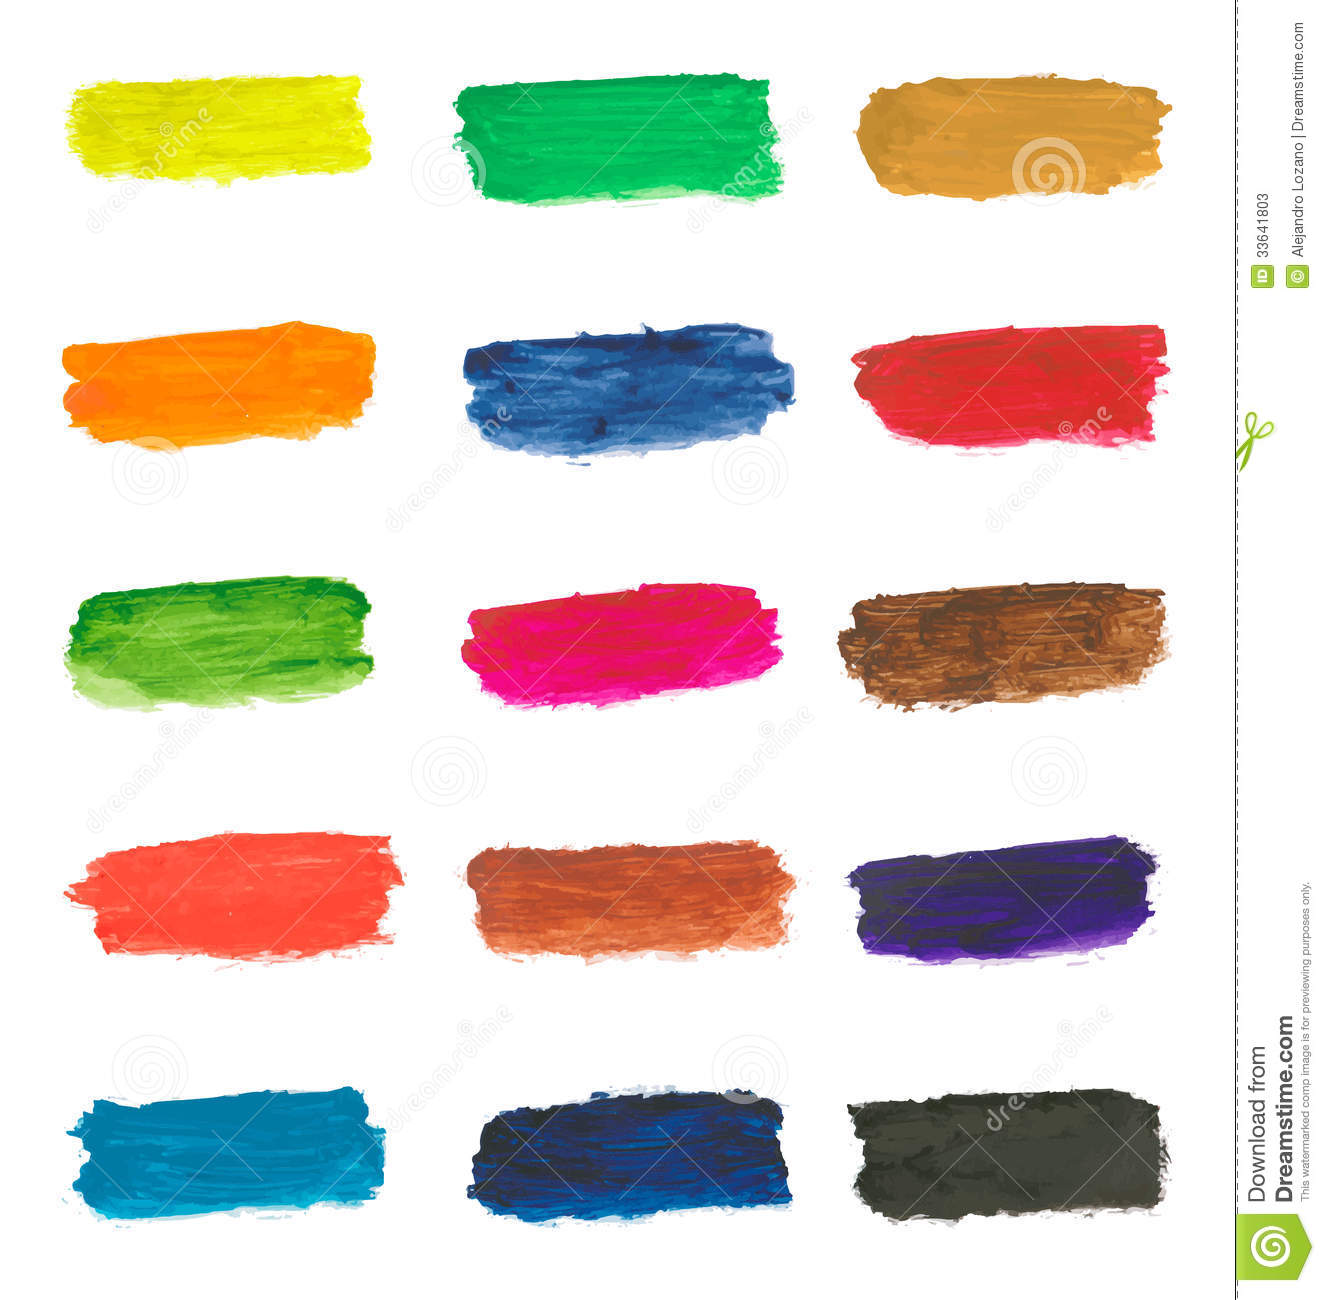 Different Colors Of Paint: Colorful Paint Brushstrokes Stock Vector